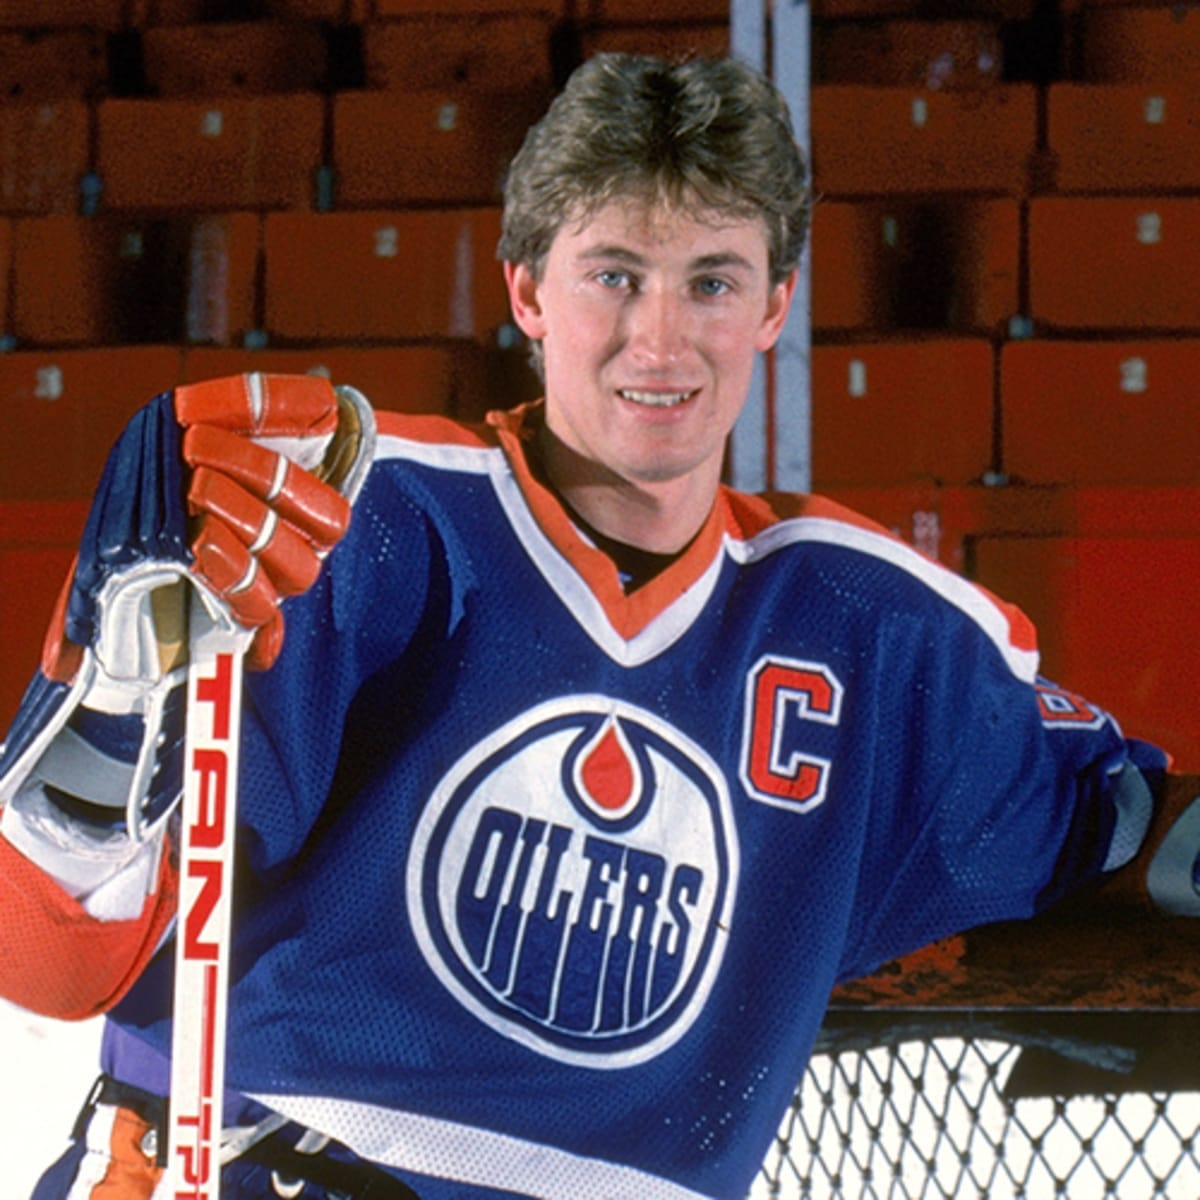 Wayne Gretzky - Stats, Quotes & Wife - Biography